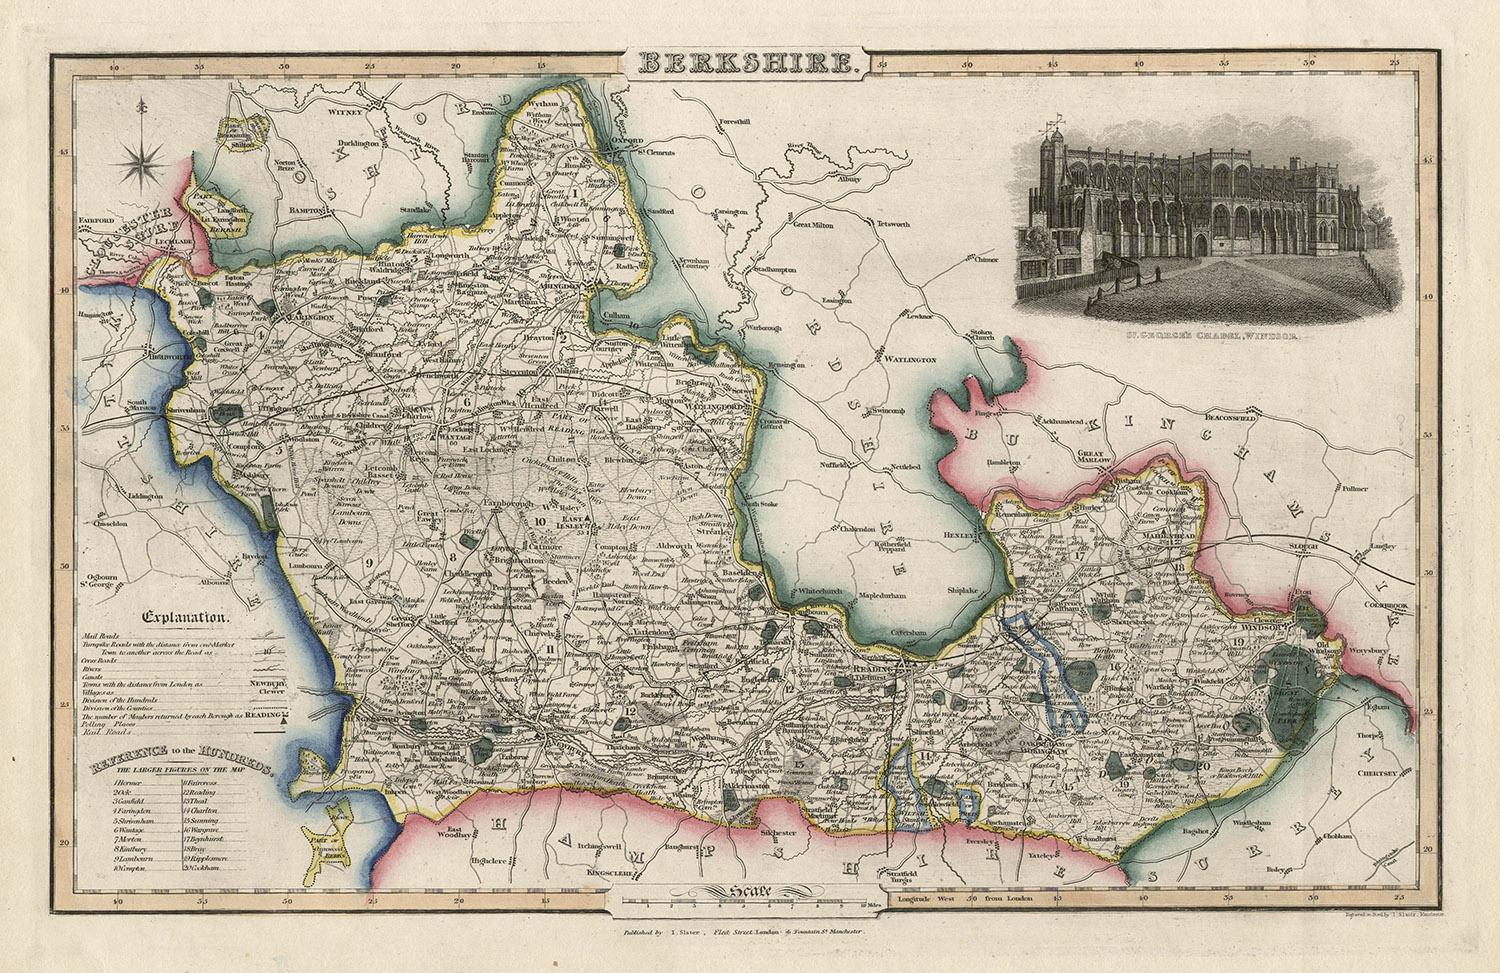 Derbyshire antique English county map by Slater 1847